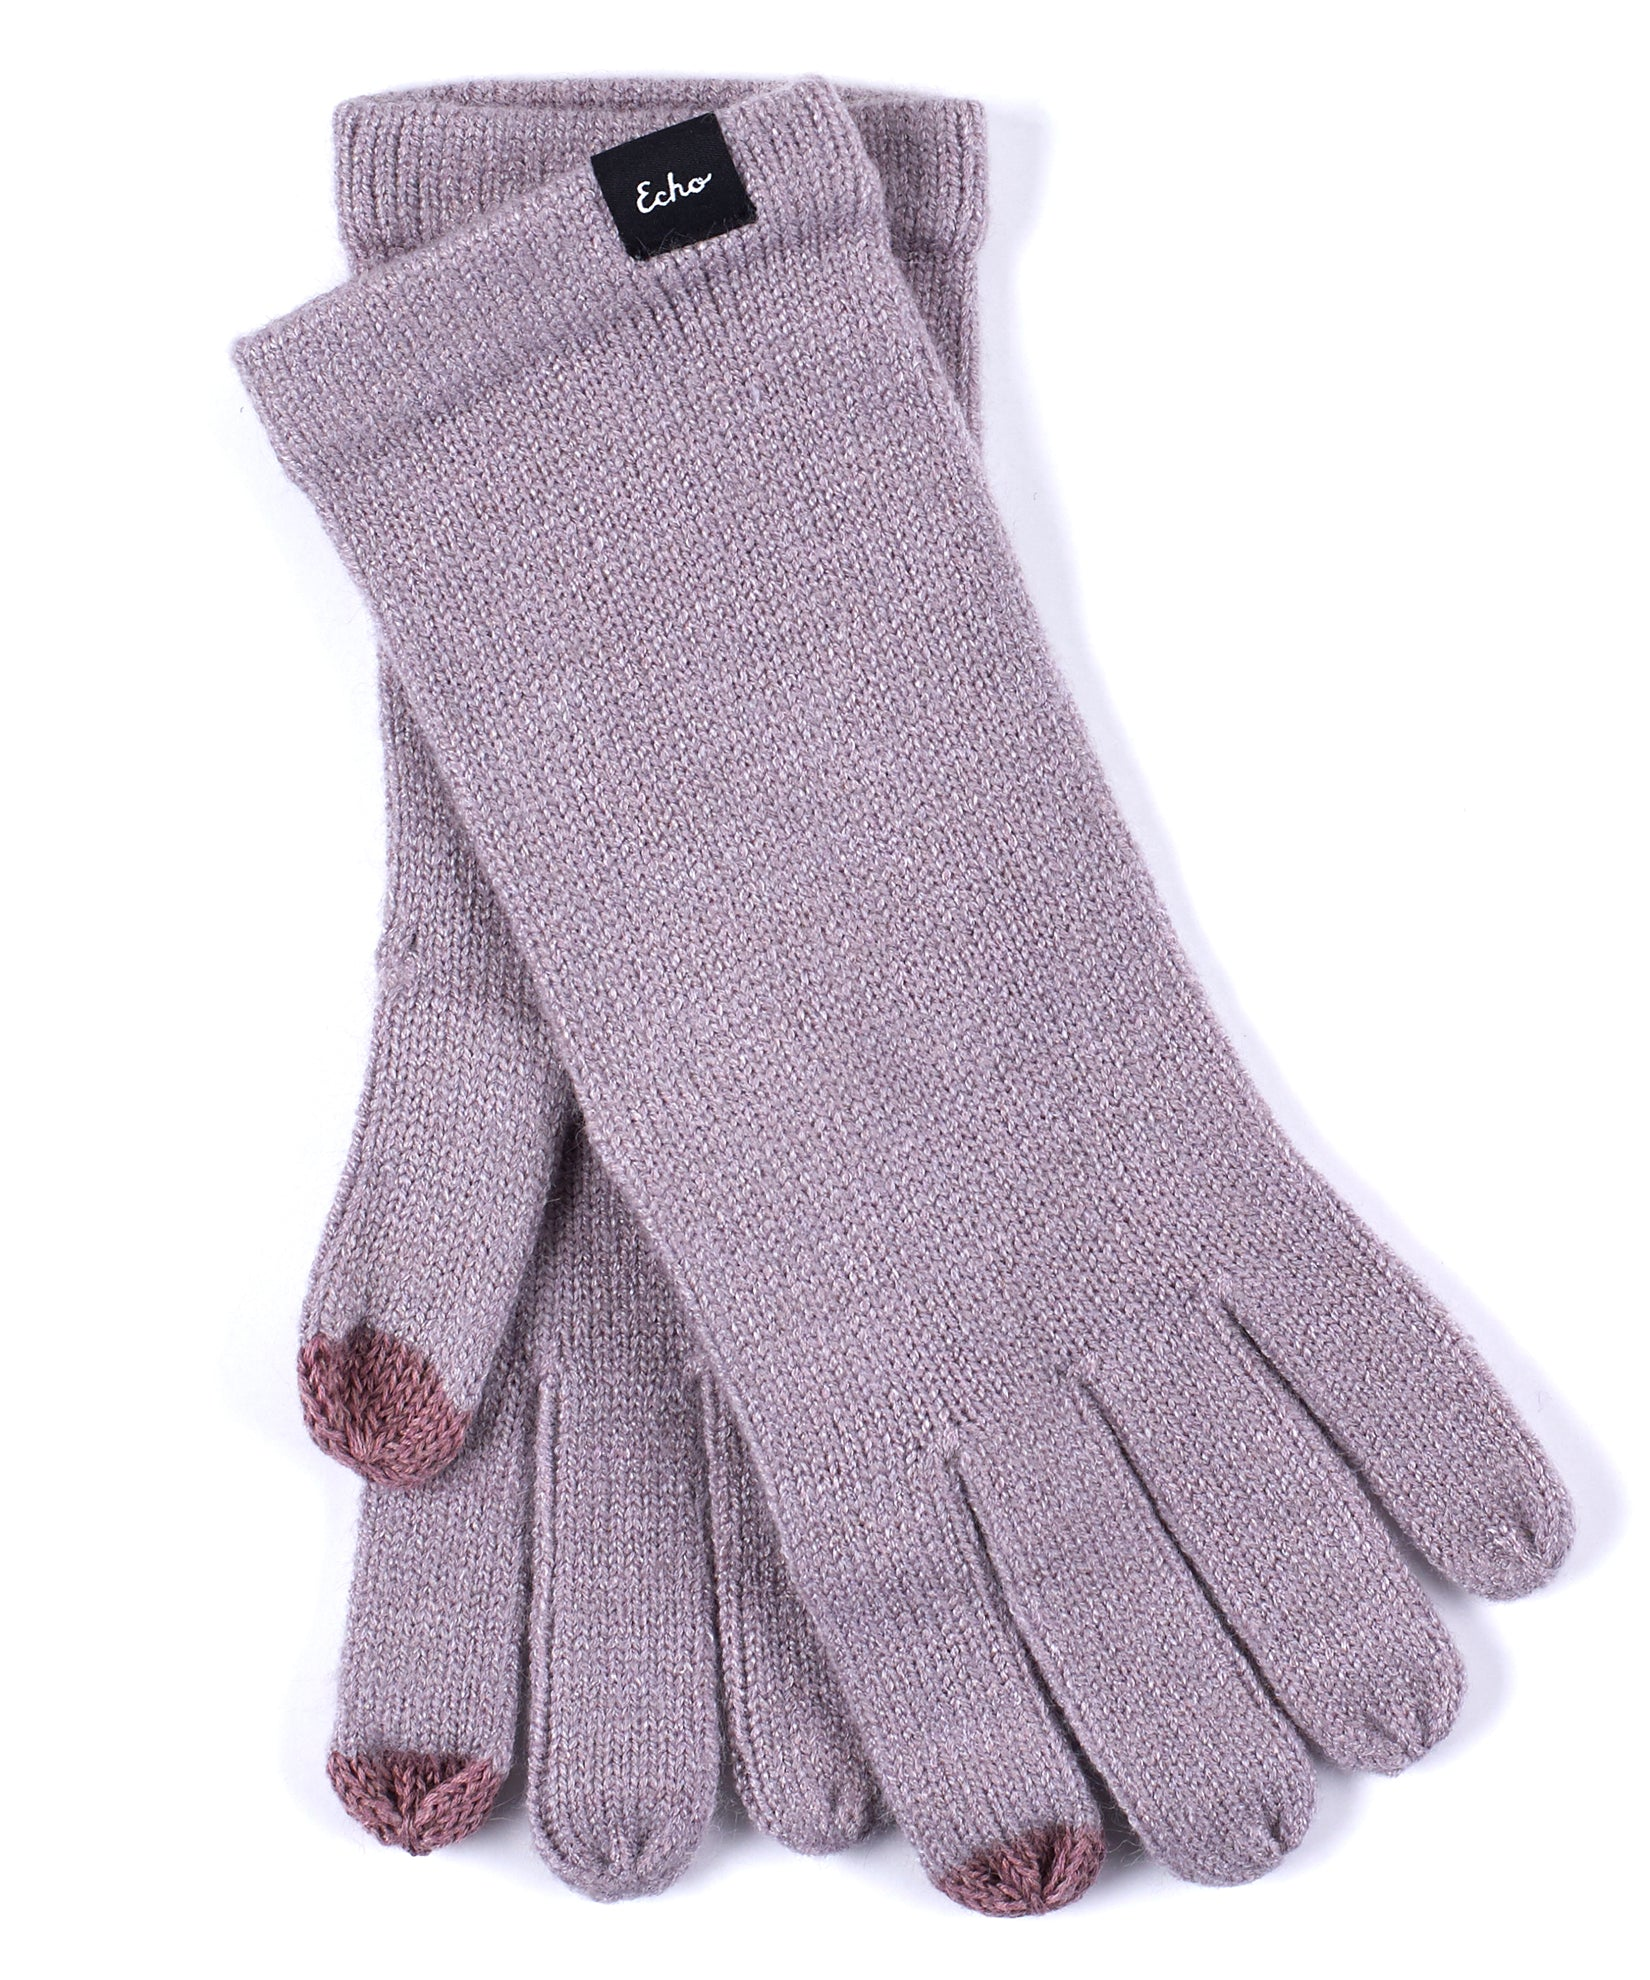 Smoked Lilac - Echo Touch Glove